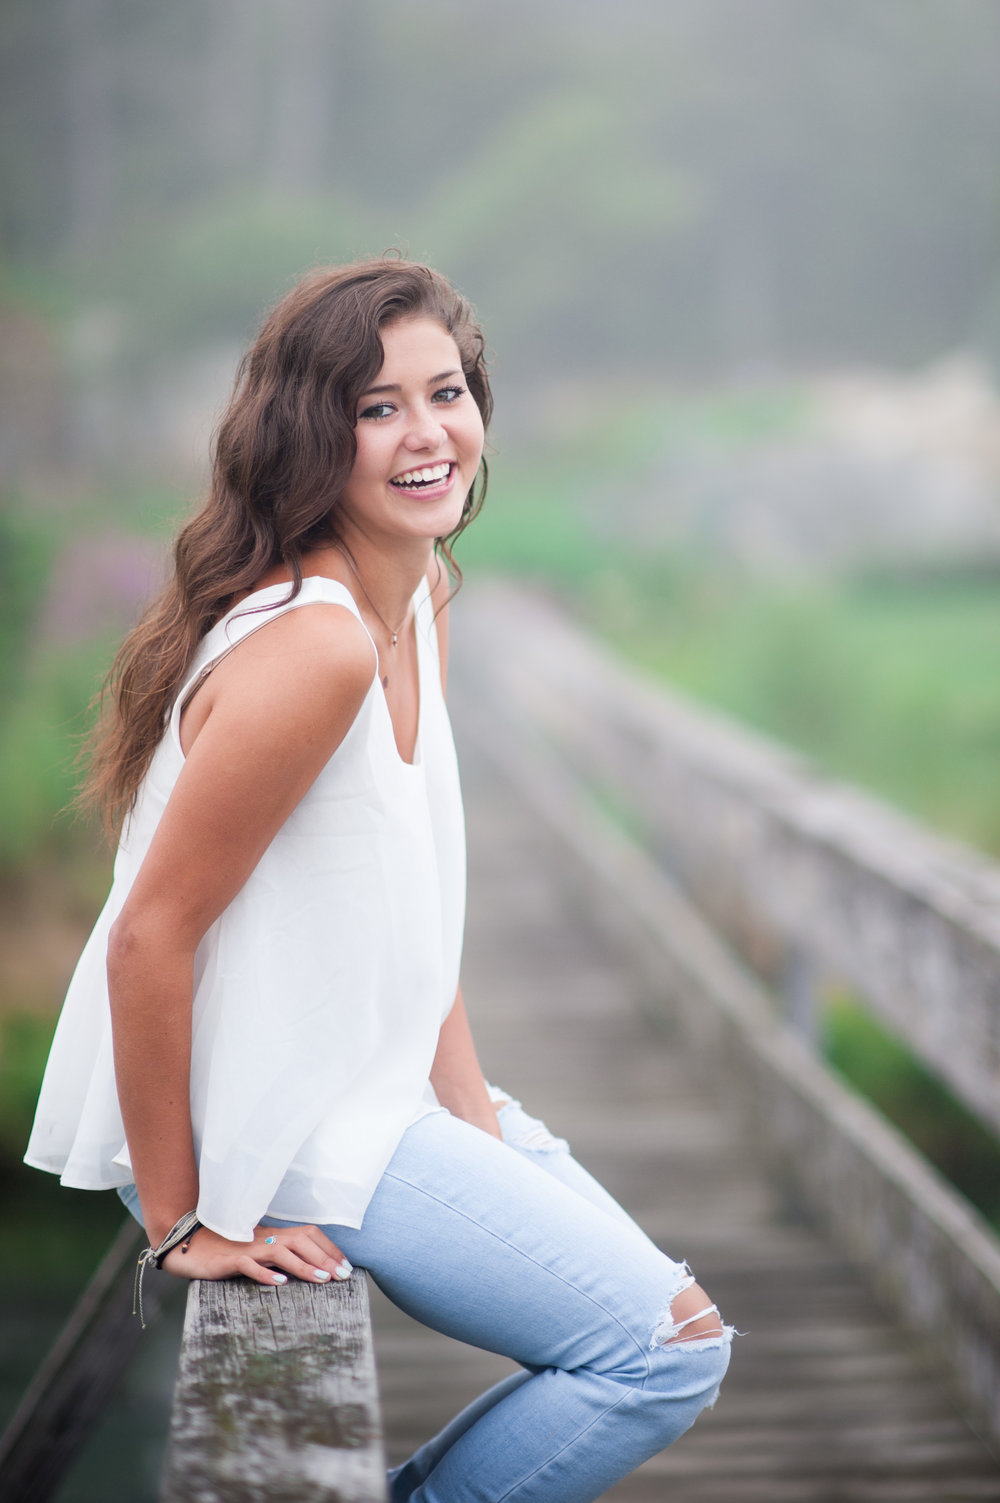 Taylor senior pictures Rockport MA-47.jpg